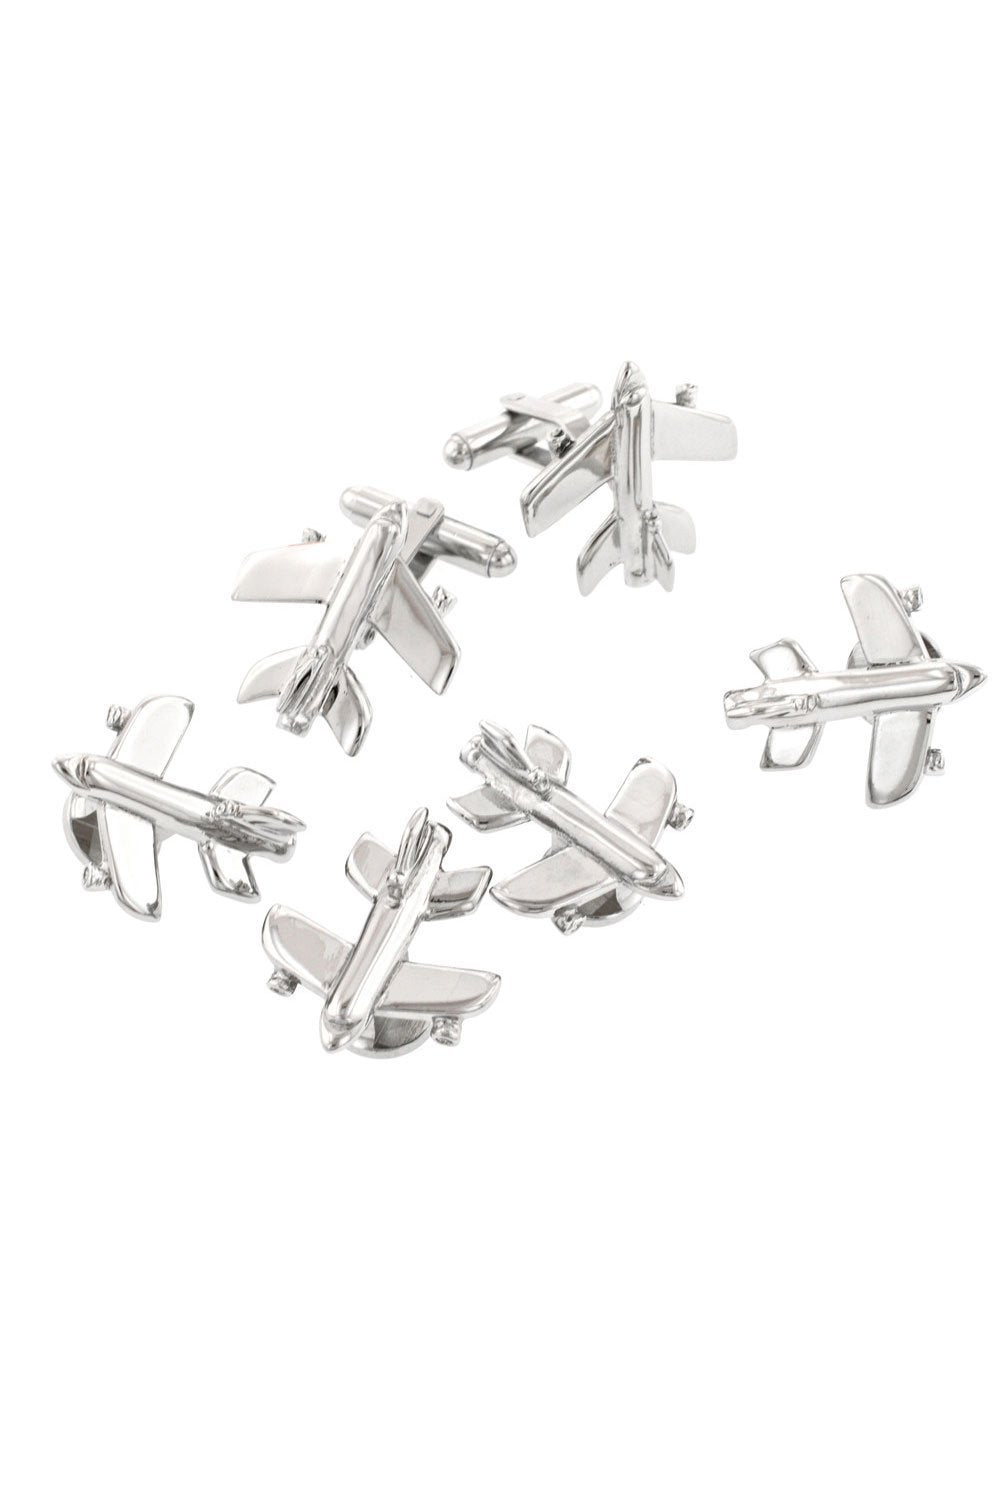 Plane Silver Studs and Cufflinks Set